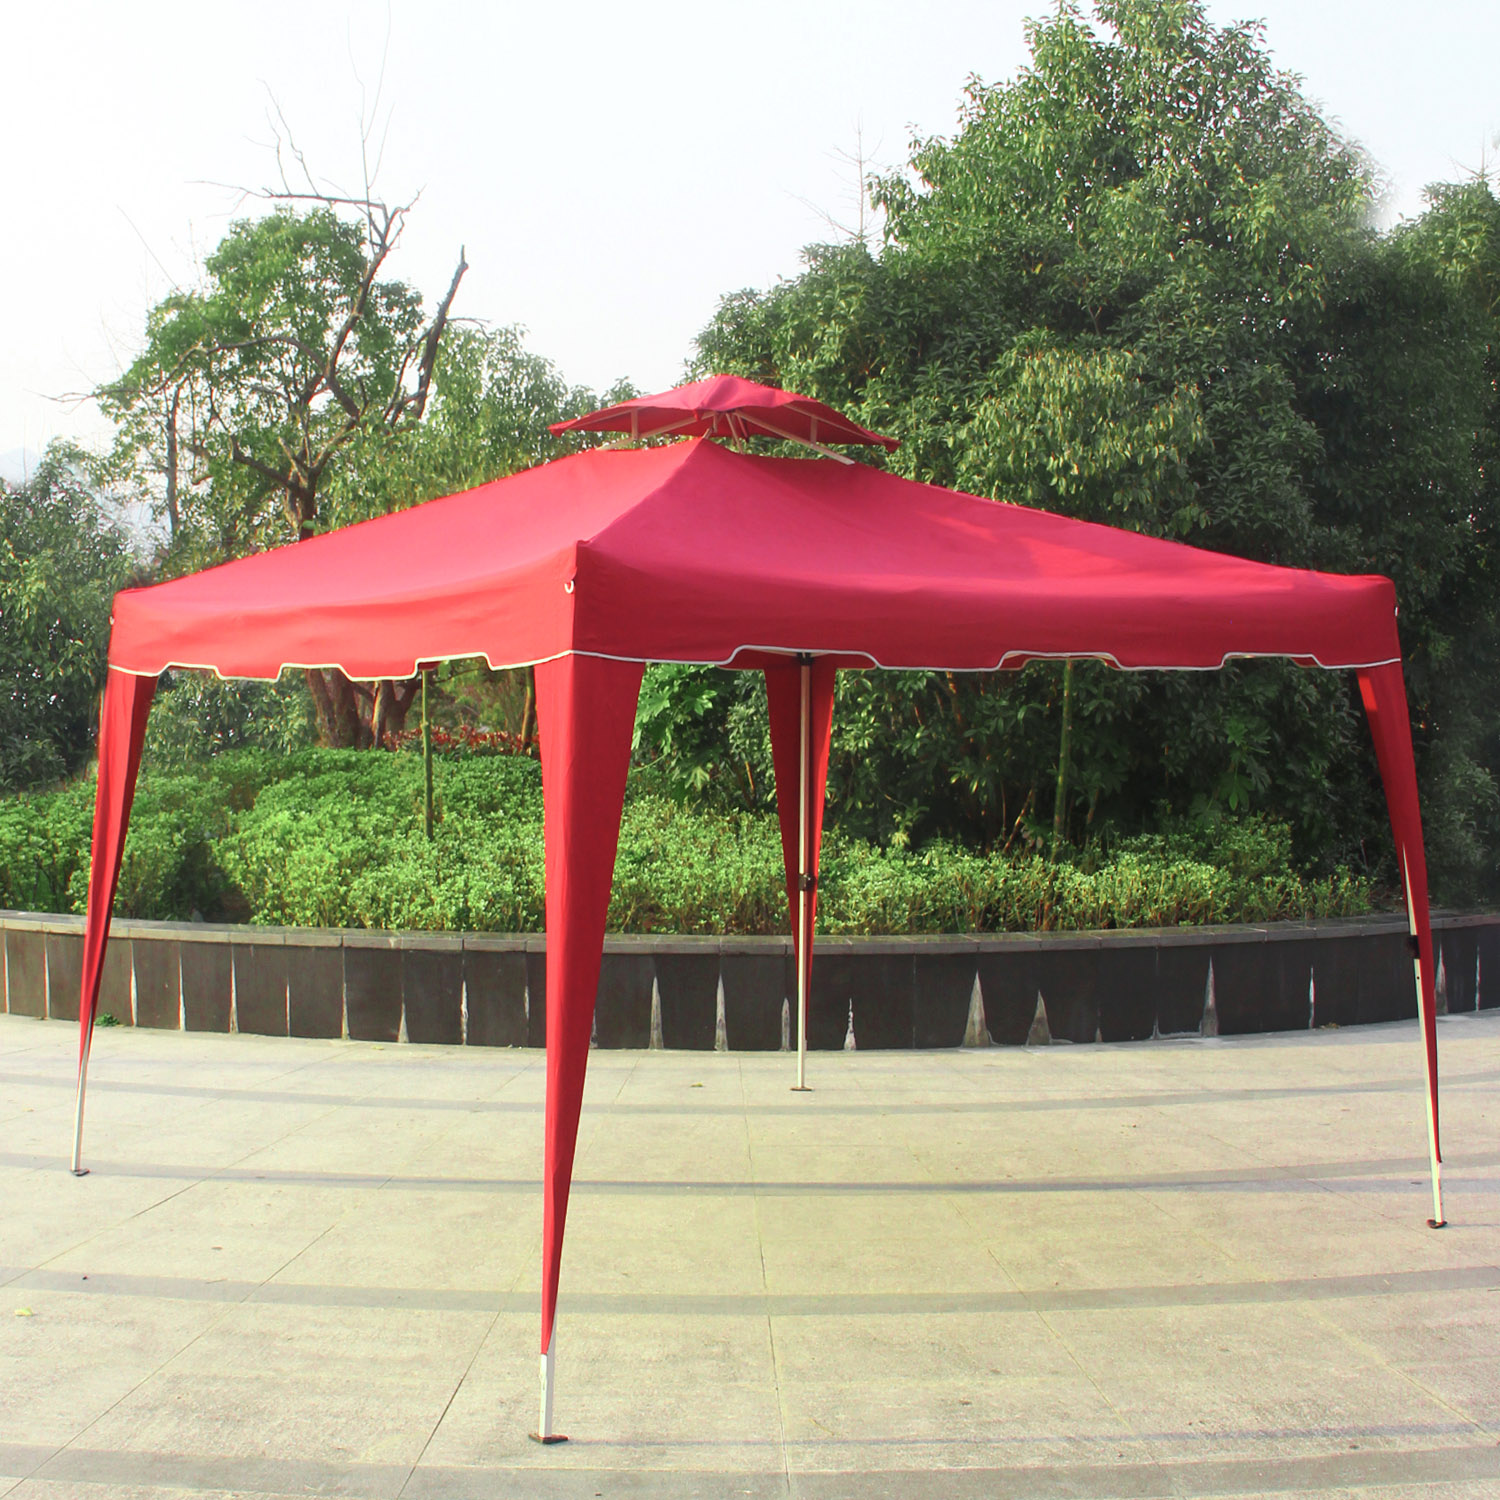 Cloud Mountain 10' x 10' Garden Pop Up Canopy Gazebo Patio Outdoor Double Roof Easy Set Up Canopy Tent with Carry Bag 5... by Cloud Mountain